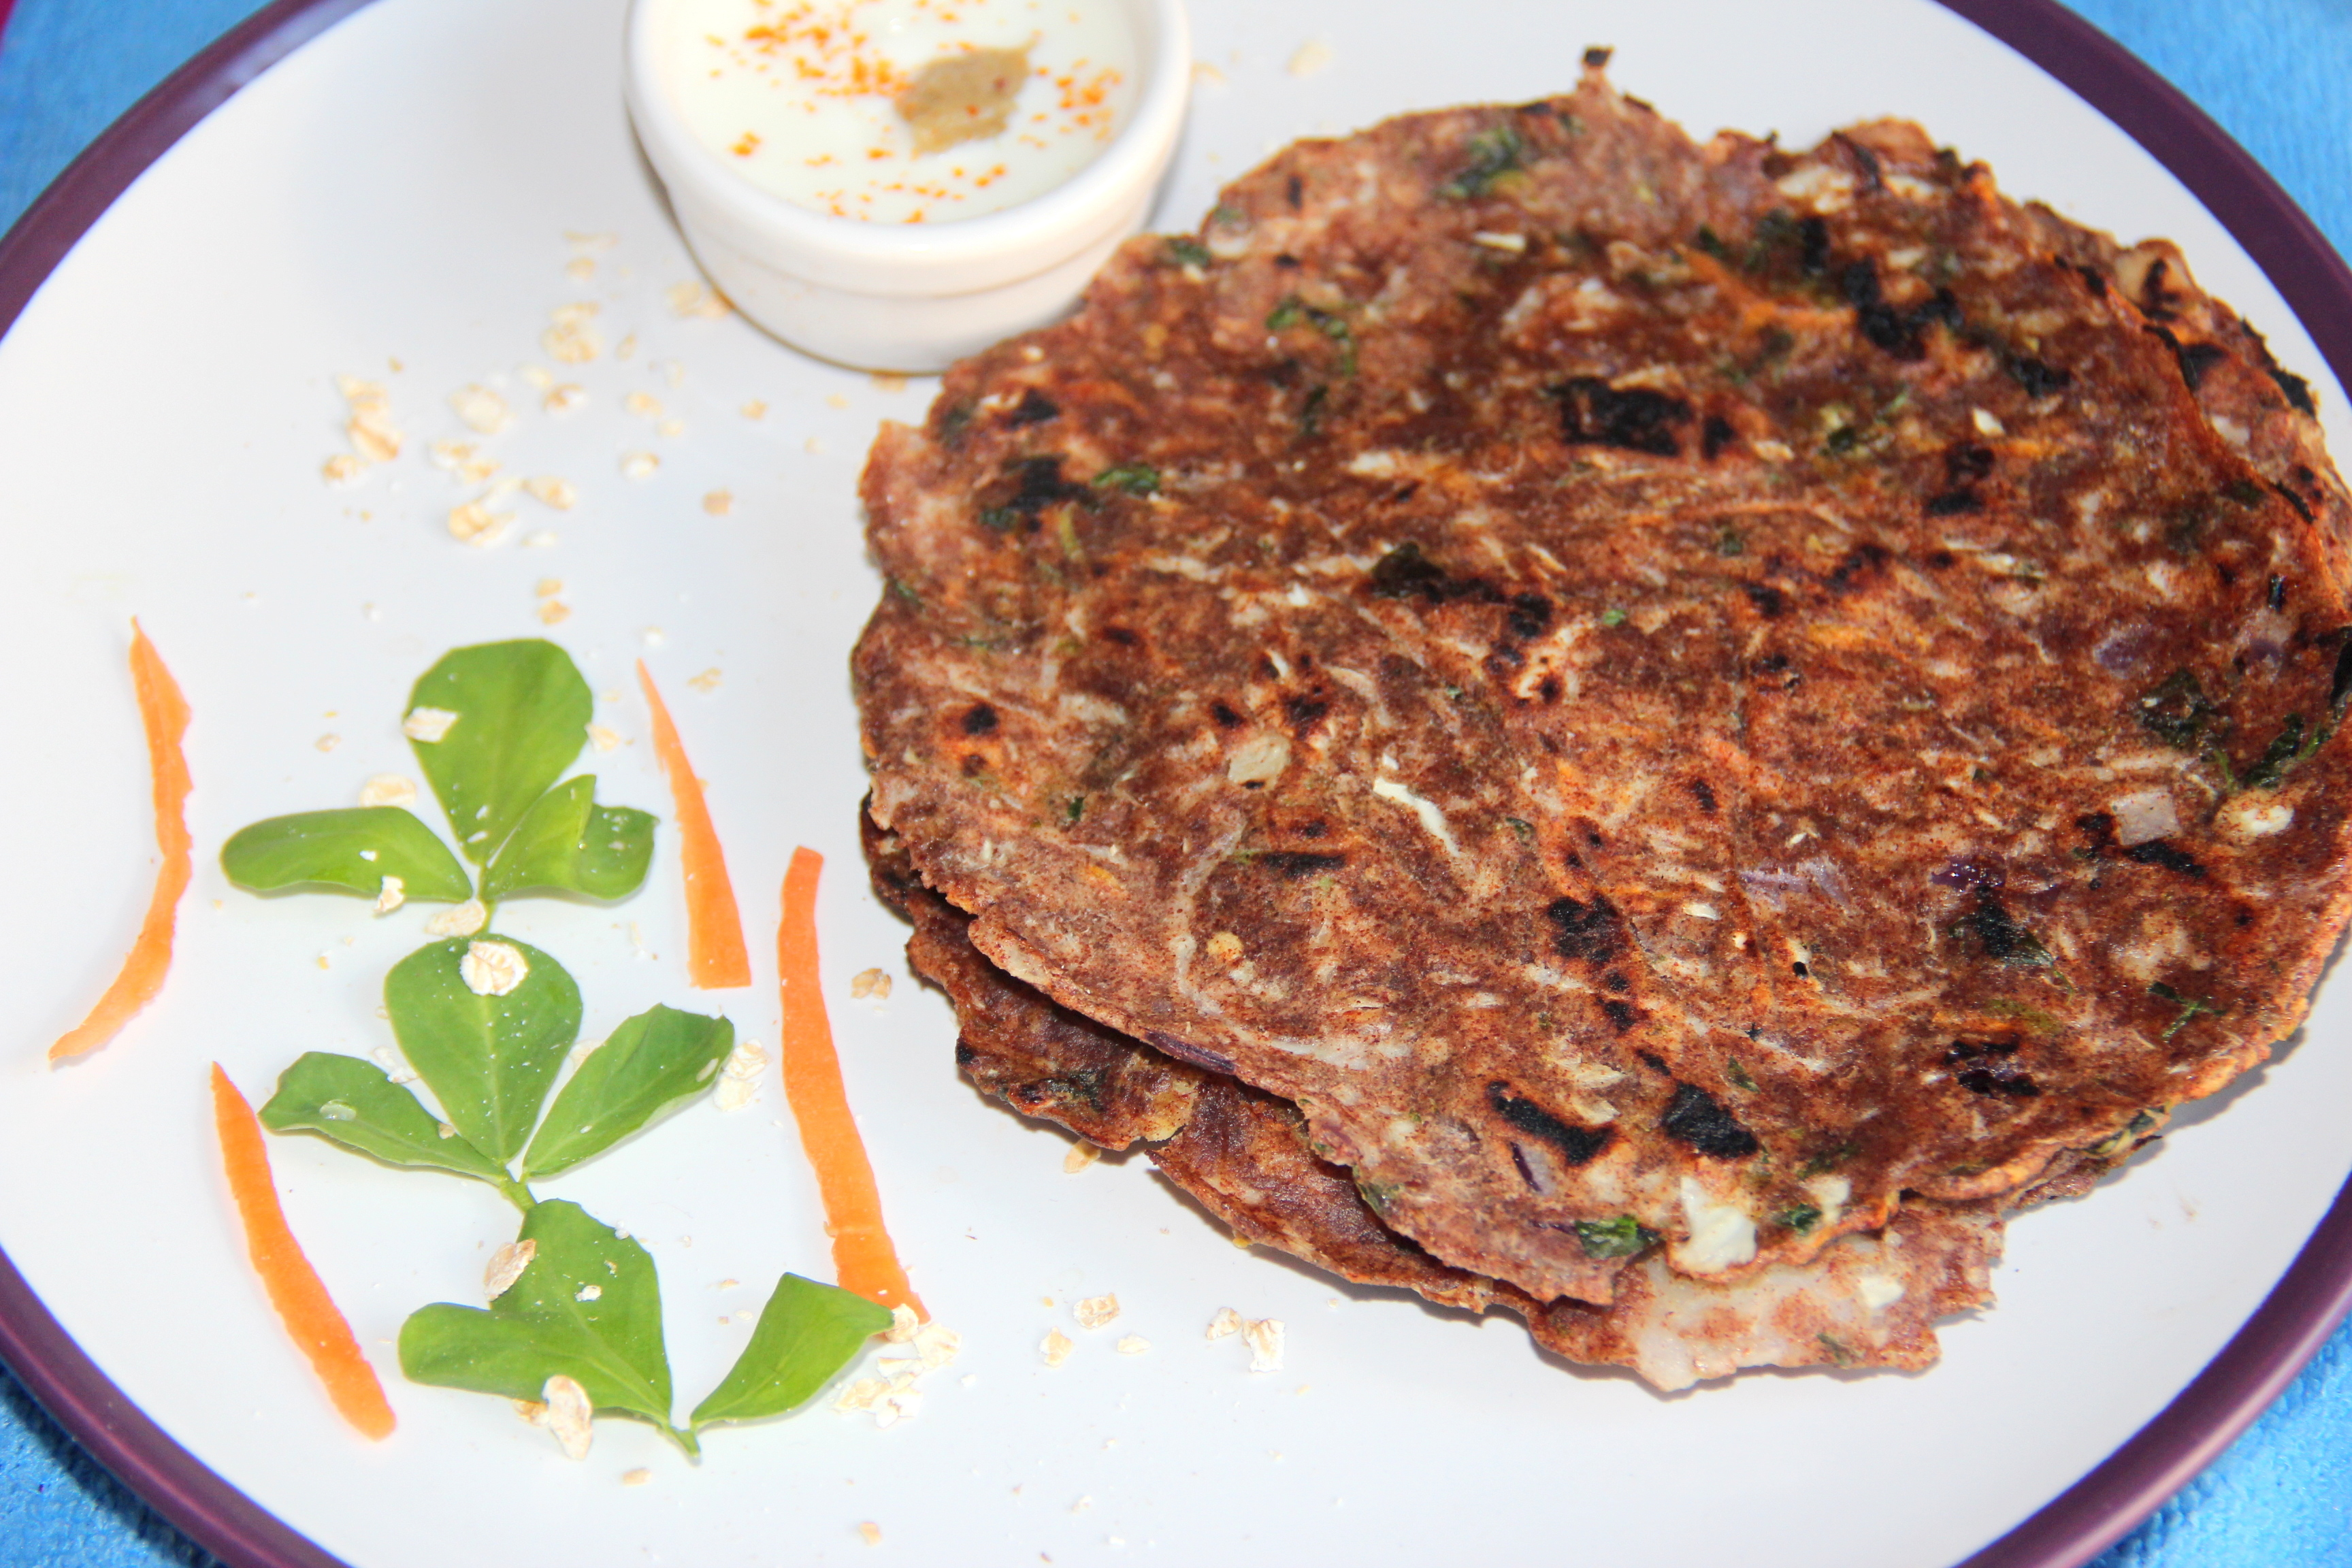 Ragi oats masala roti (Finger Millet Spicy Indian Bread):